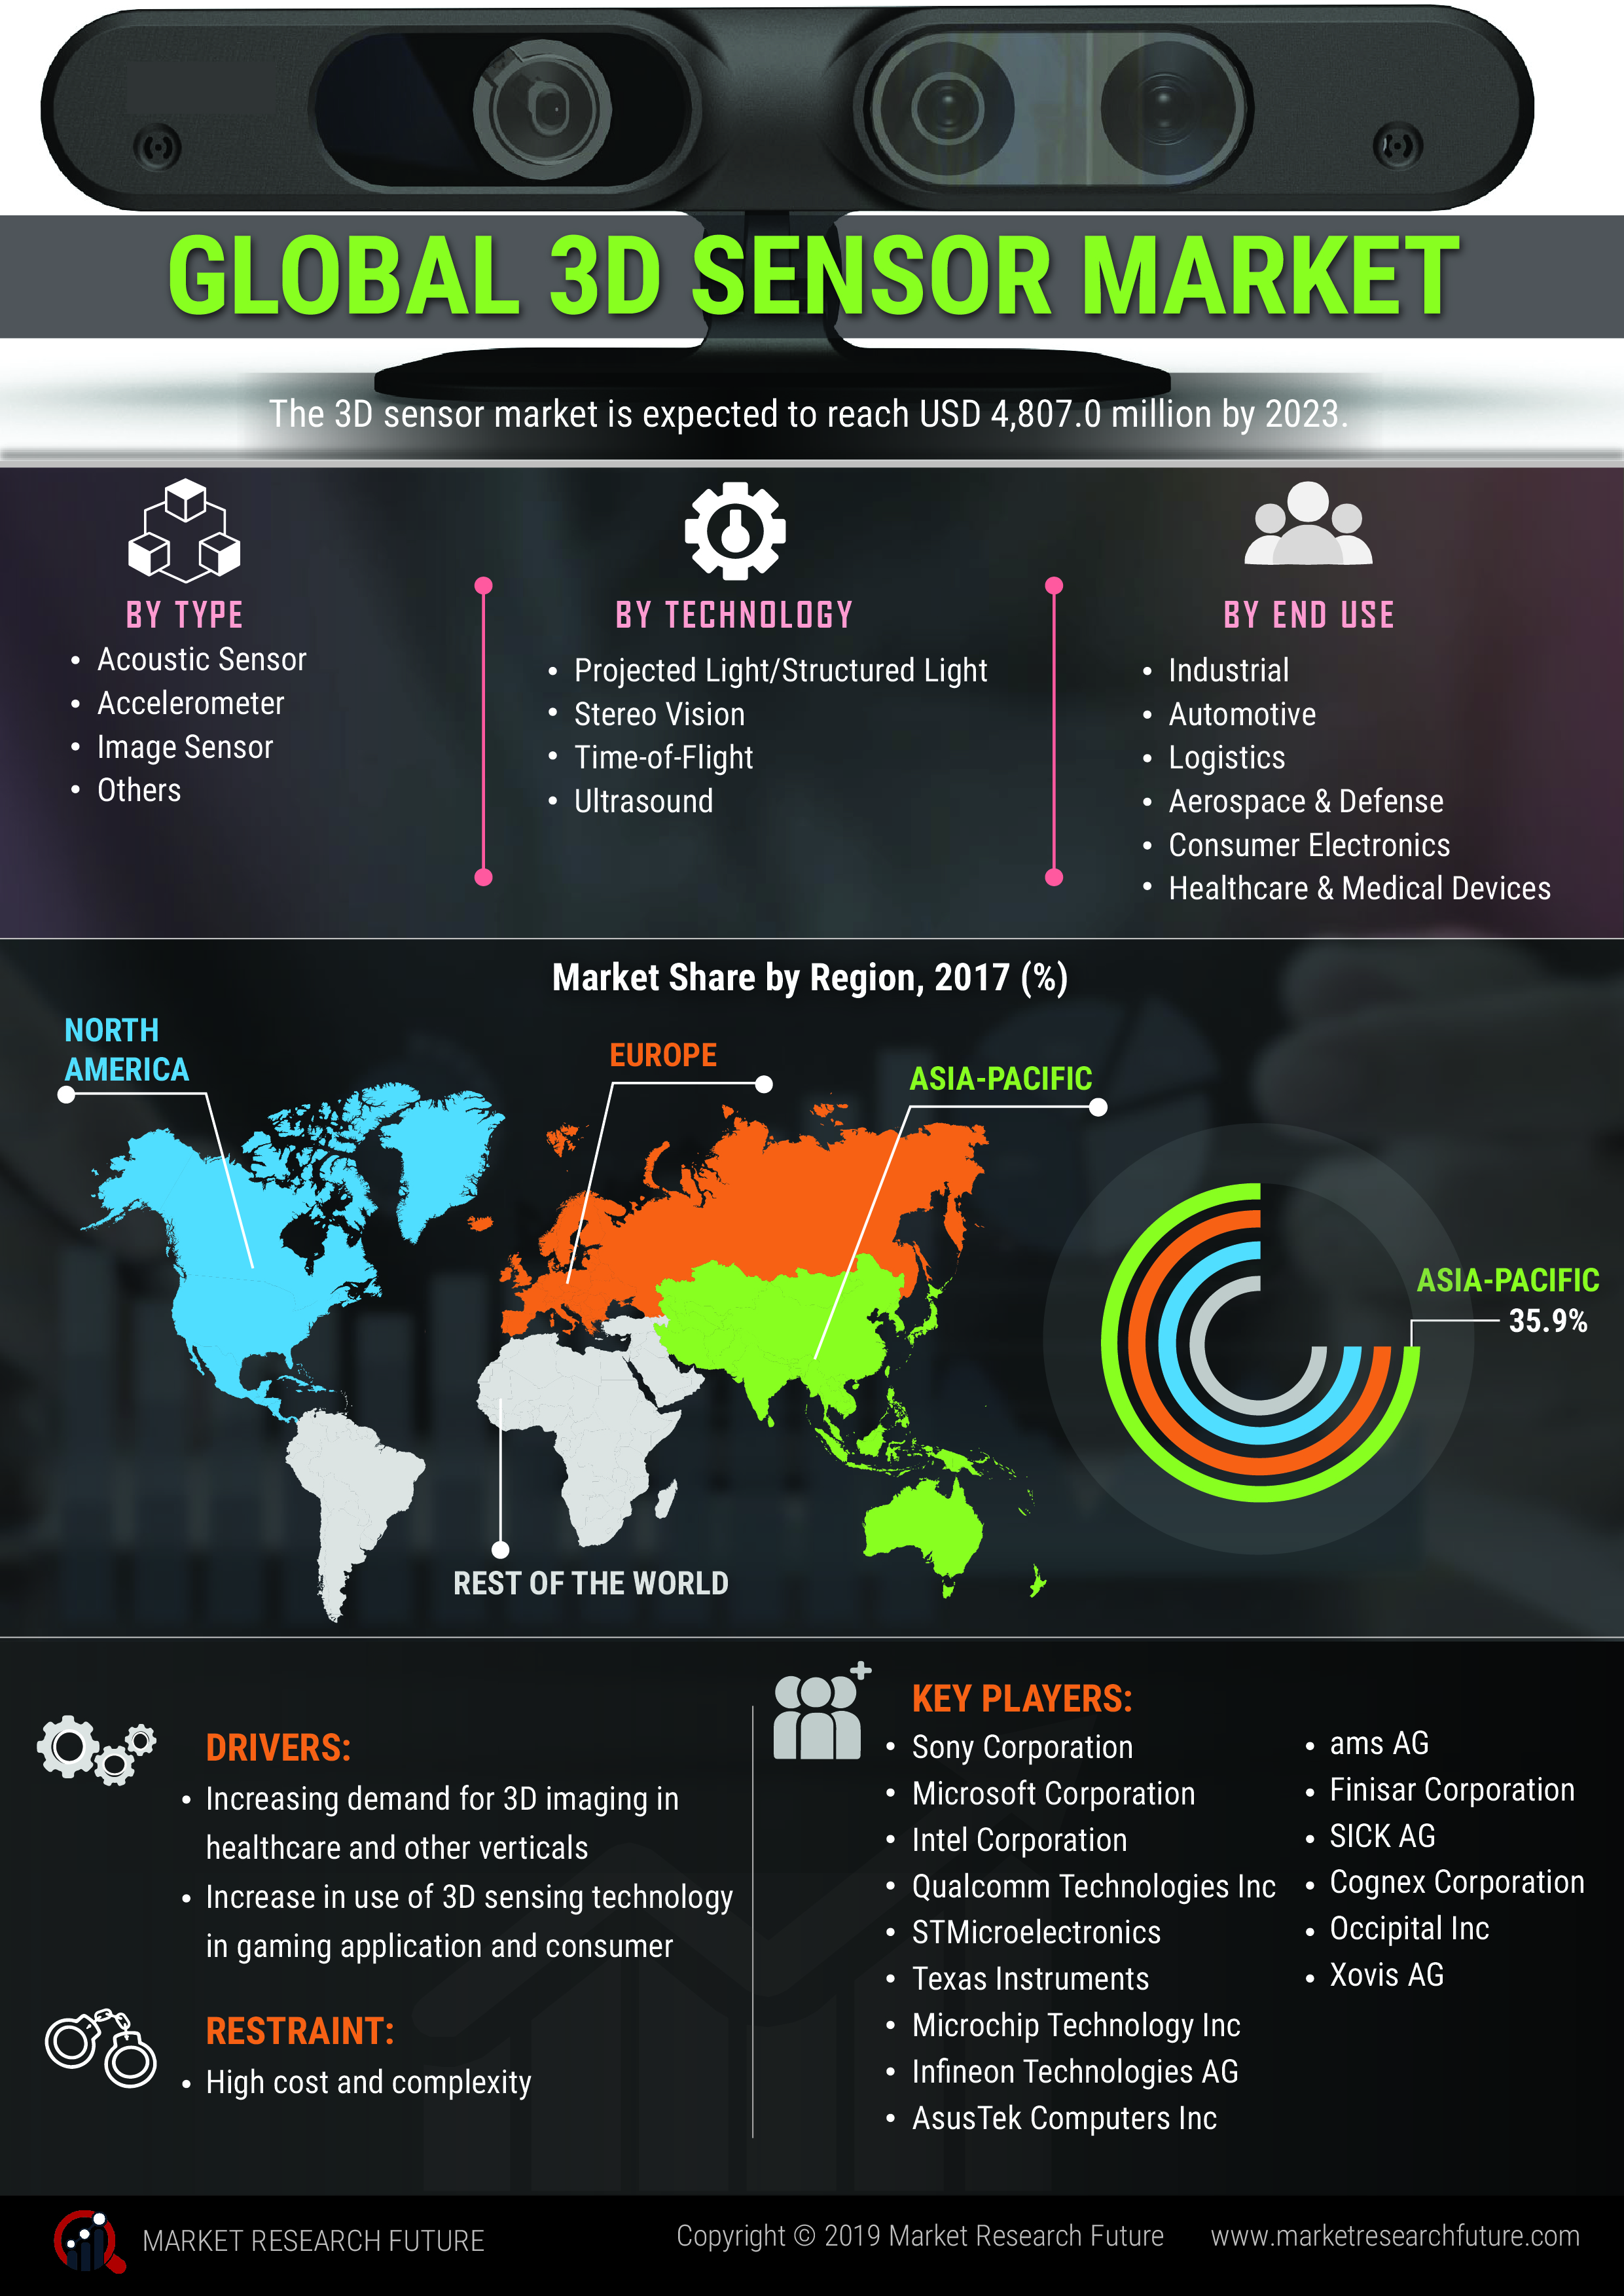 3D Sensor Market 2019: Analytical Overview, Regional Trends, Segments and Growth at CAGR of 28% With Leading Players Analysis By Size, Share, Sales Revenue, Price and Gross Margin- Forecast 2023